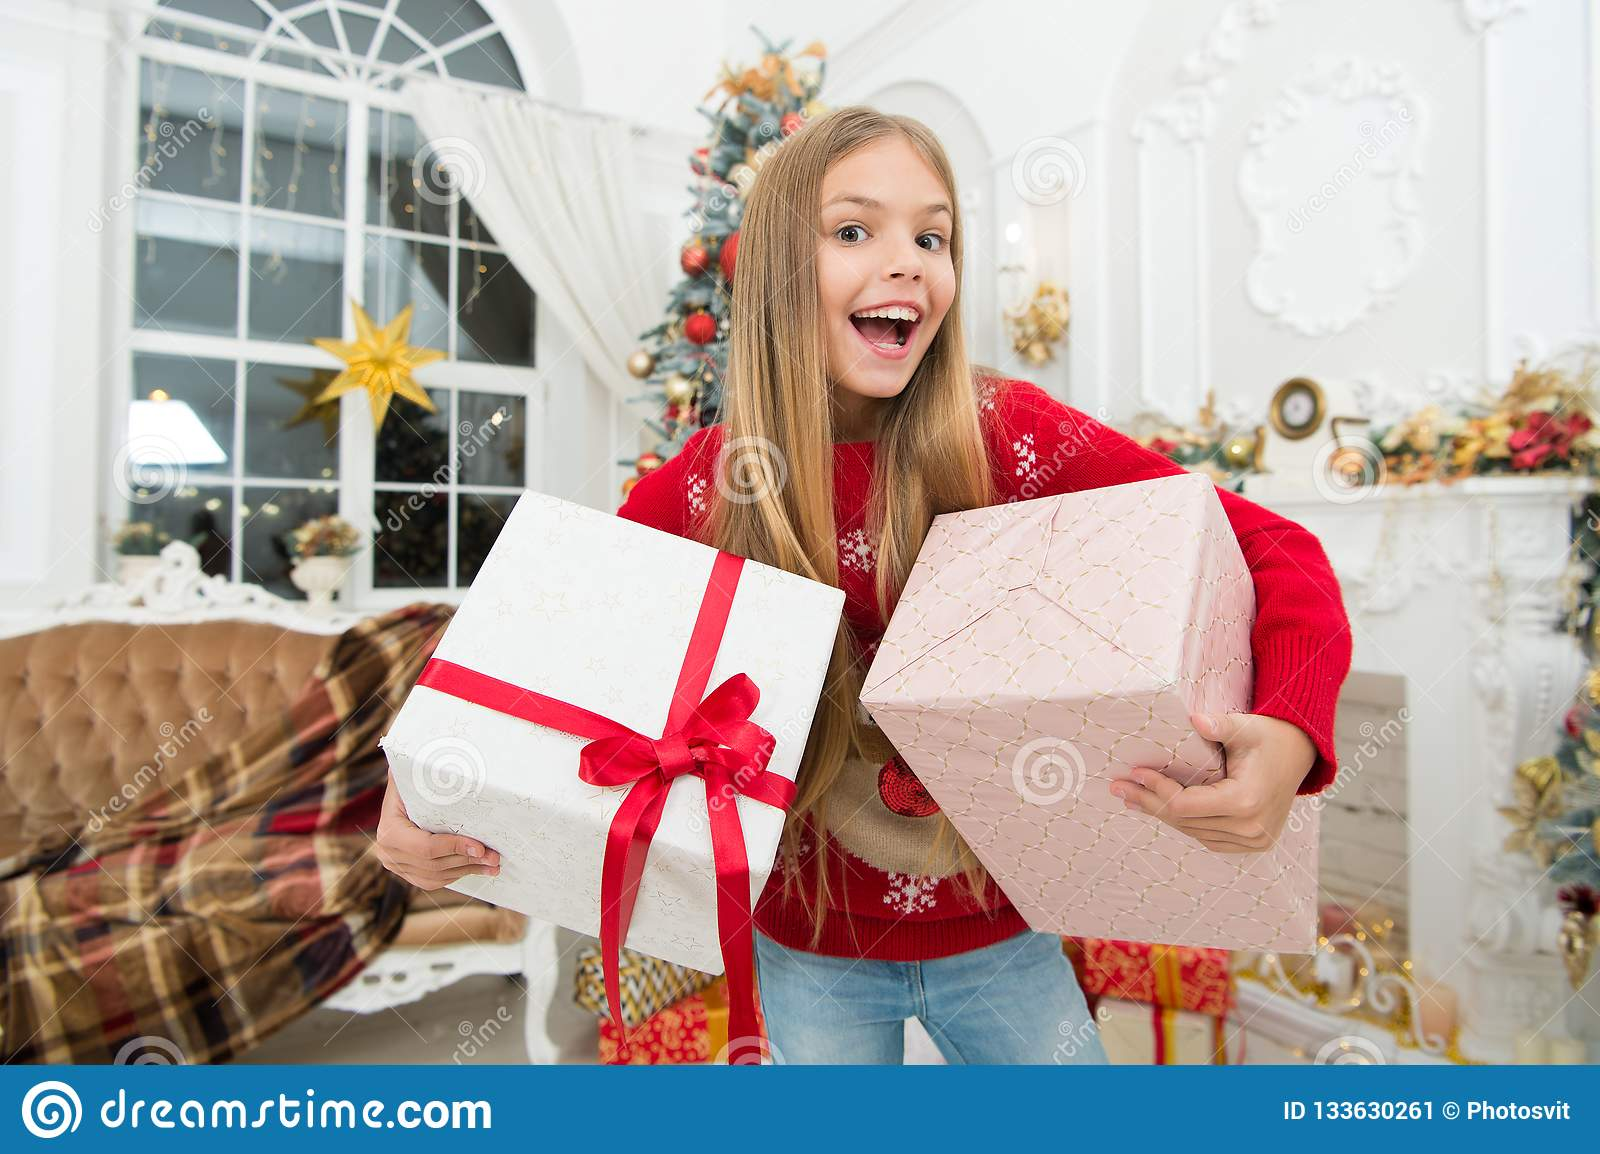 Child enjoy the holiday. Christmas tree and presents. Happy new year. The whole world in one touch. Winter. xmas online